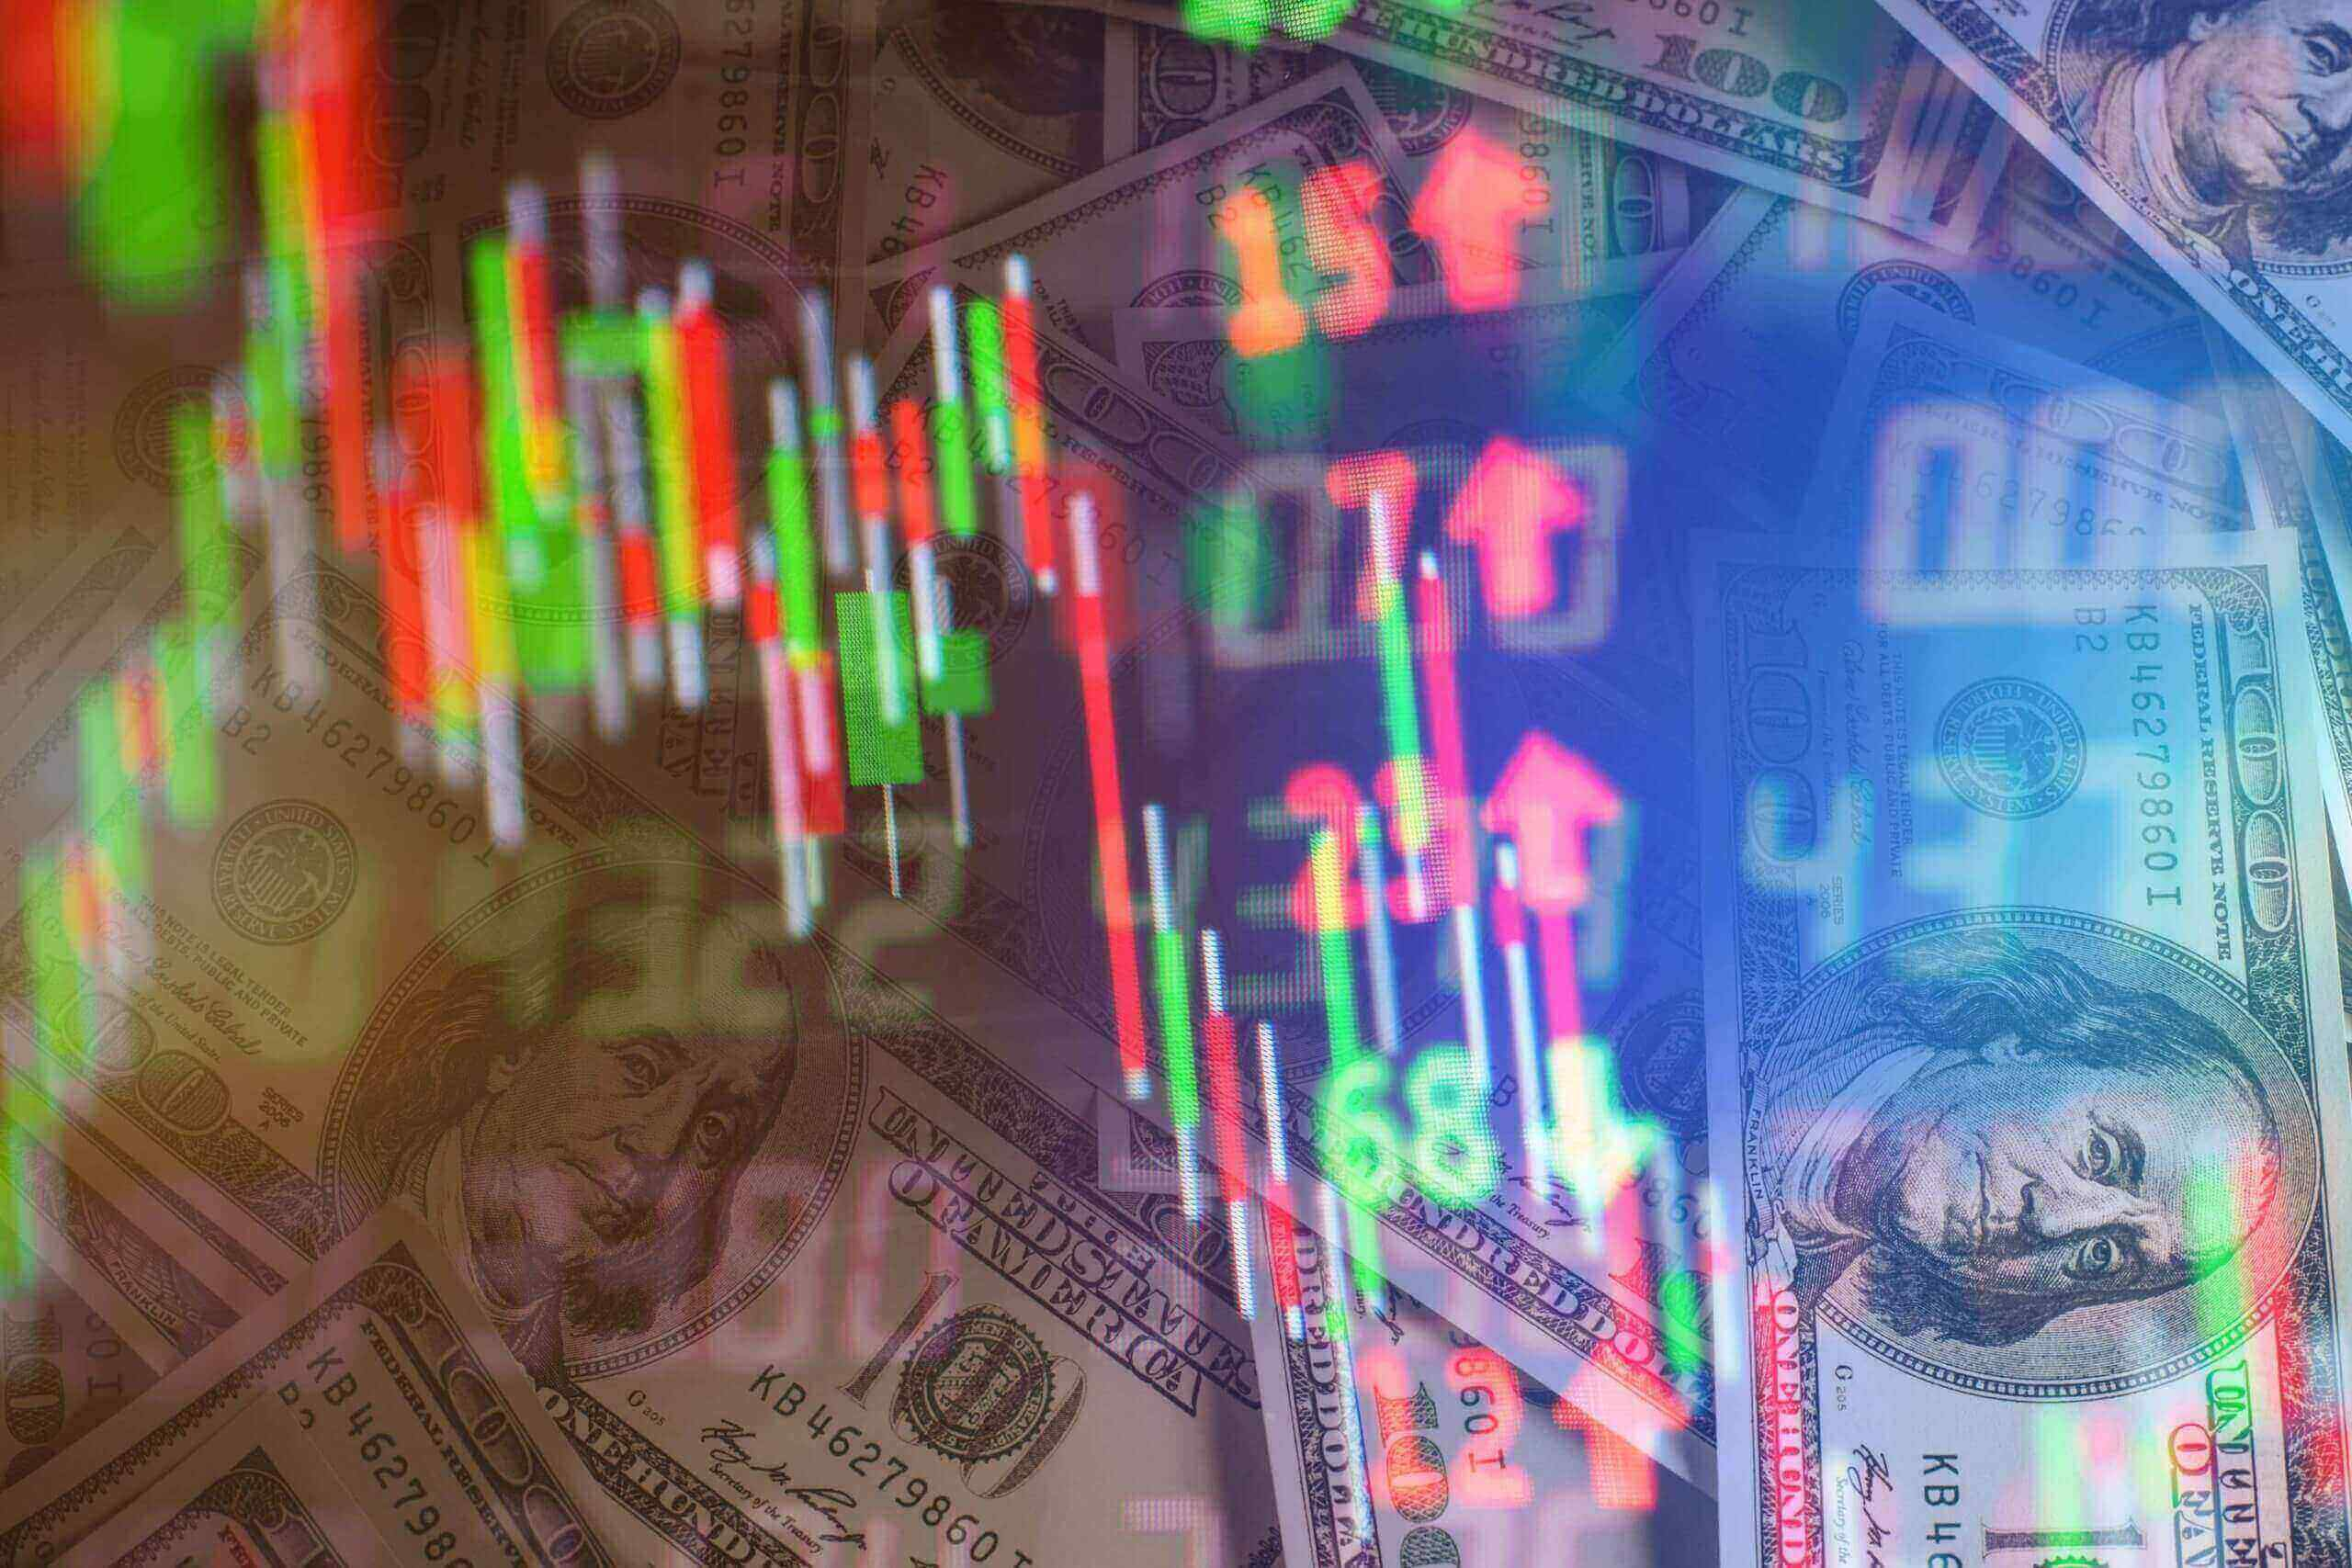 ZFX: Strong economic data propped up investor sentiment